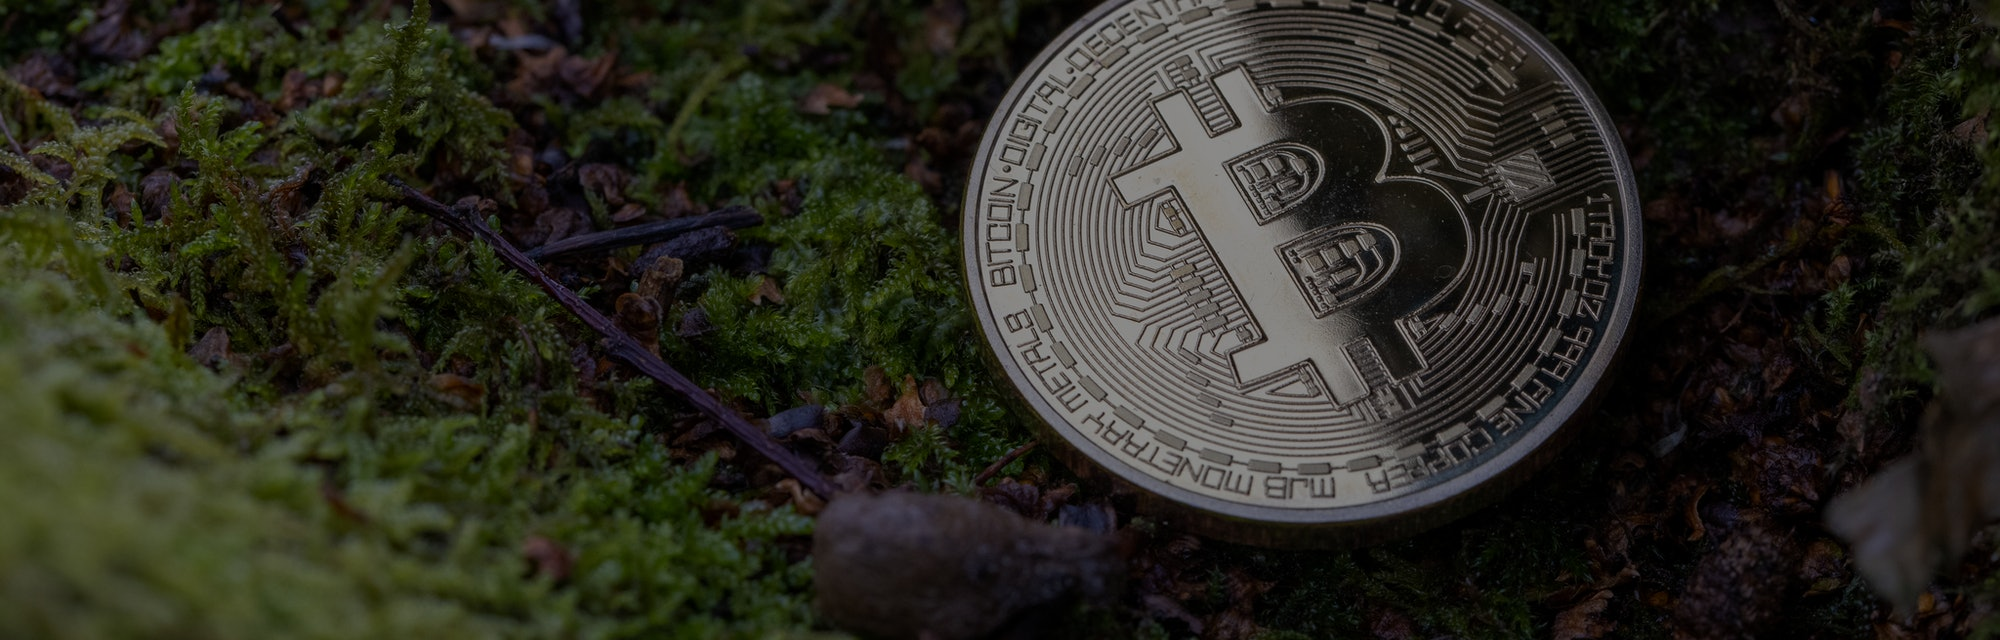 Environmental shots of a physical Bitcoin in 'green' spaces. An abstract conceptual shot of how cryp...